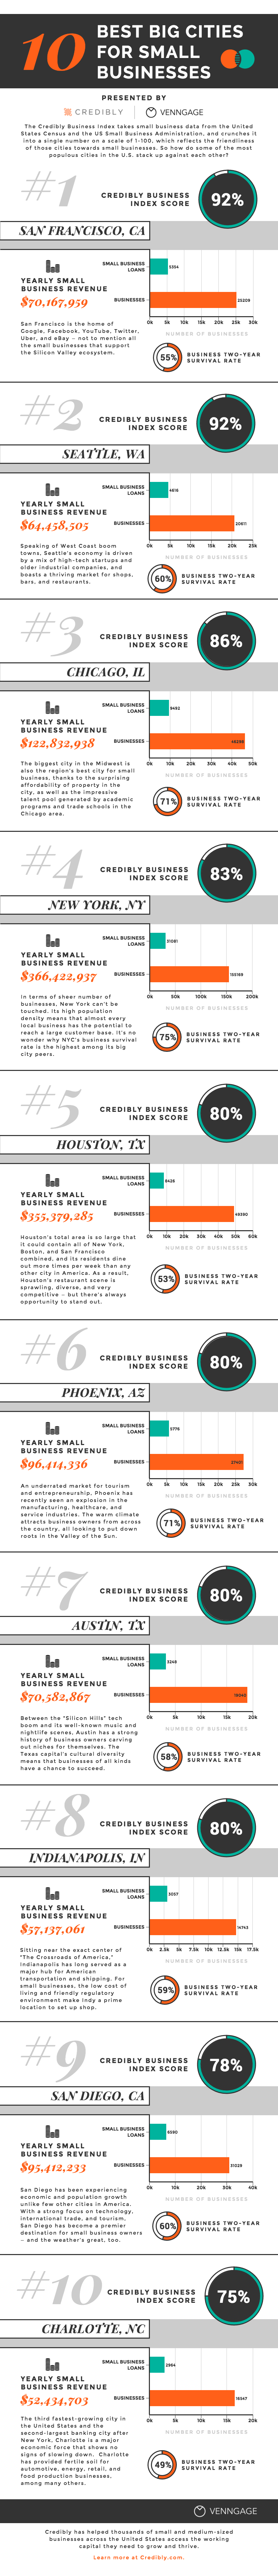 Best Cities for Small Businesses infographic